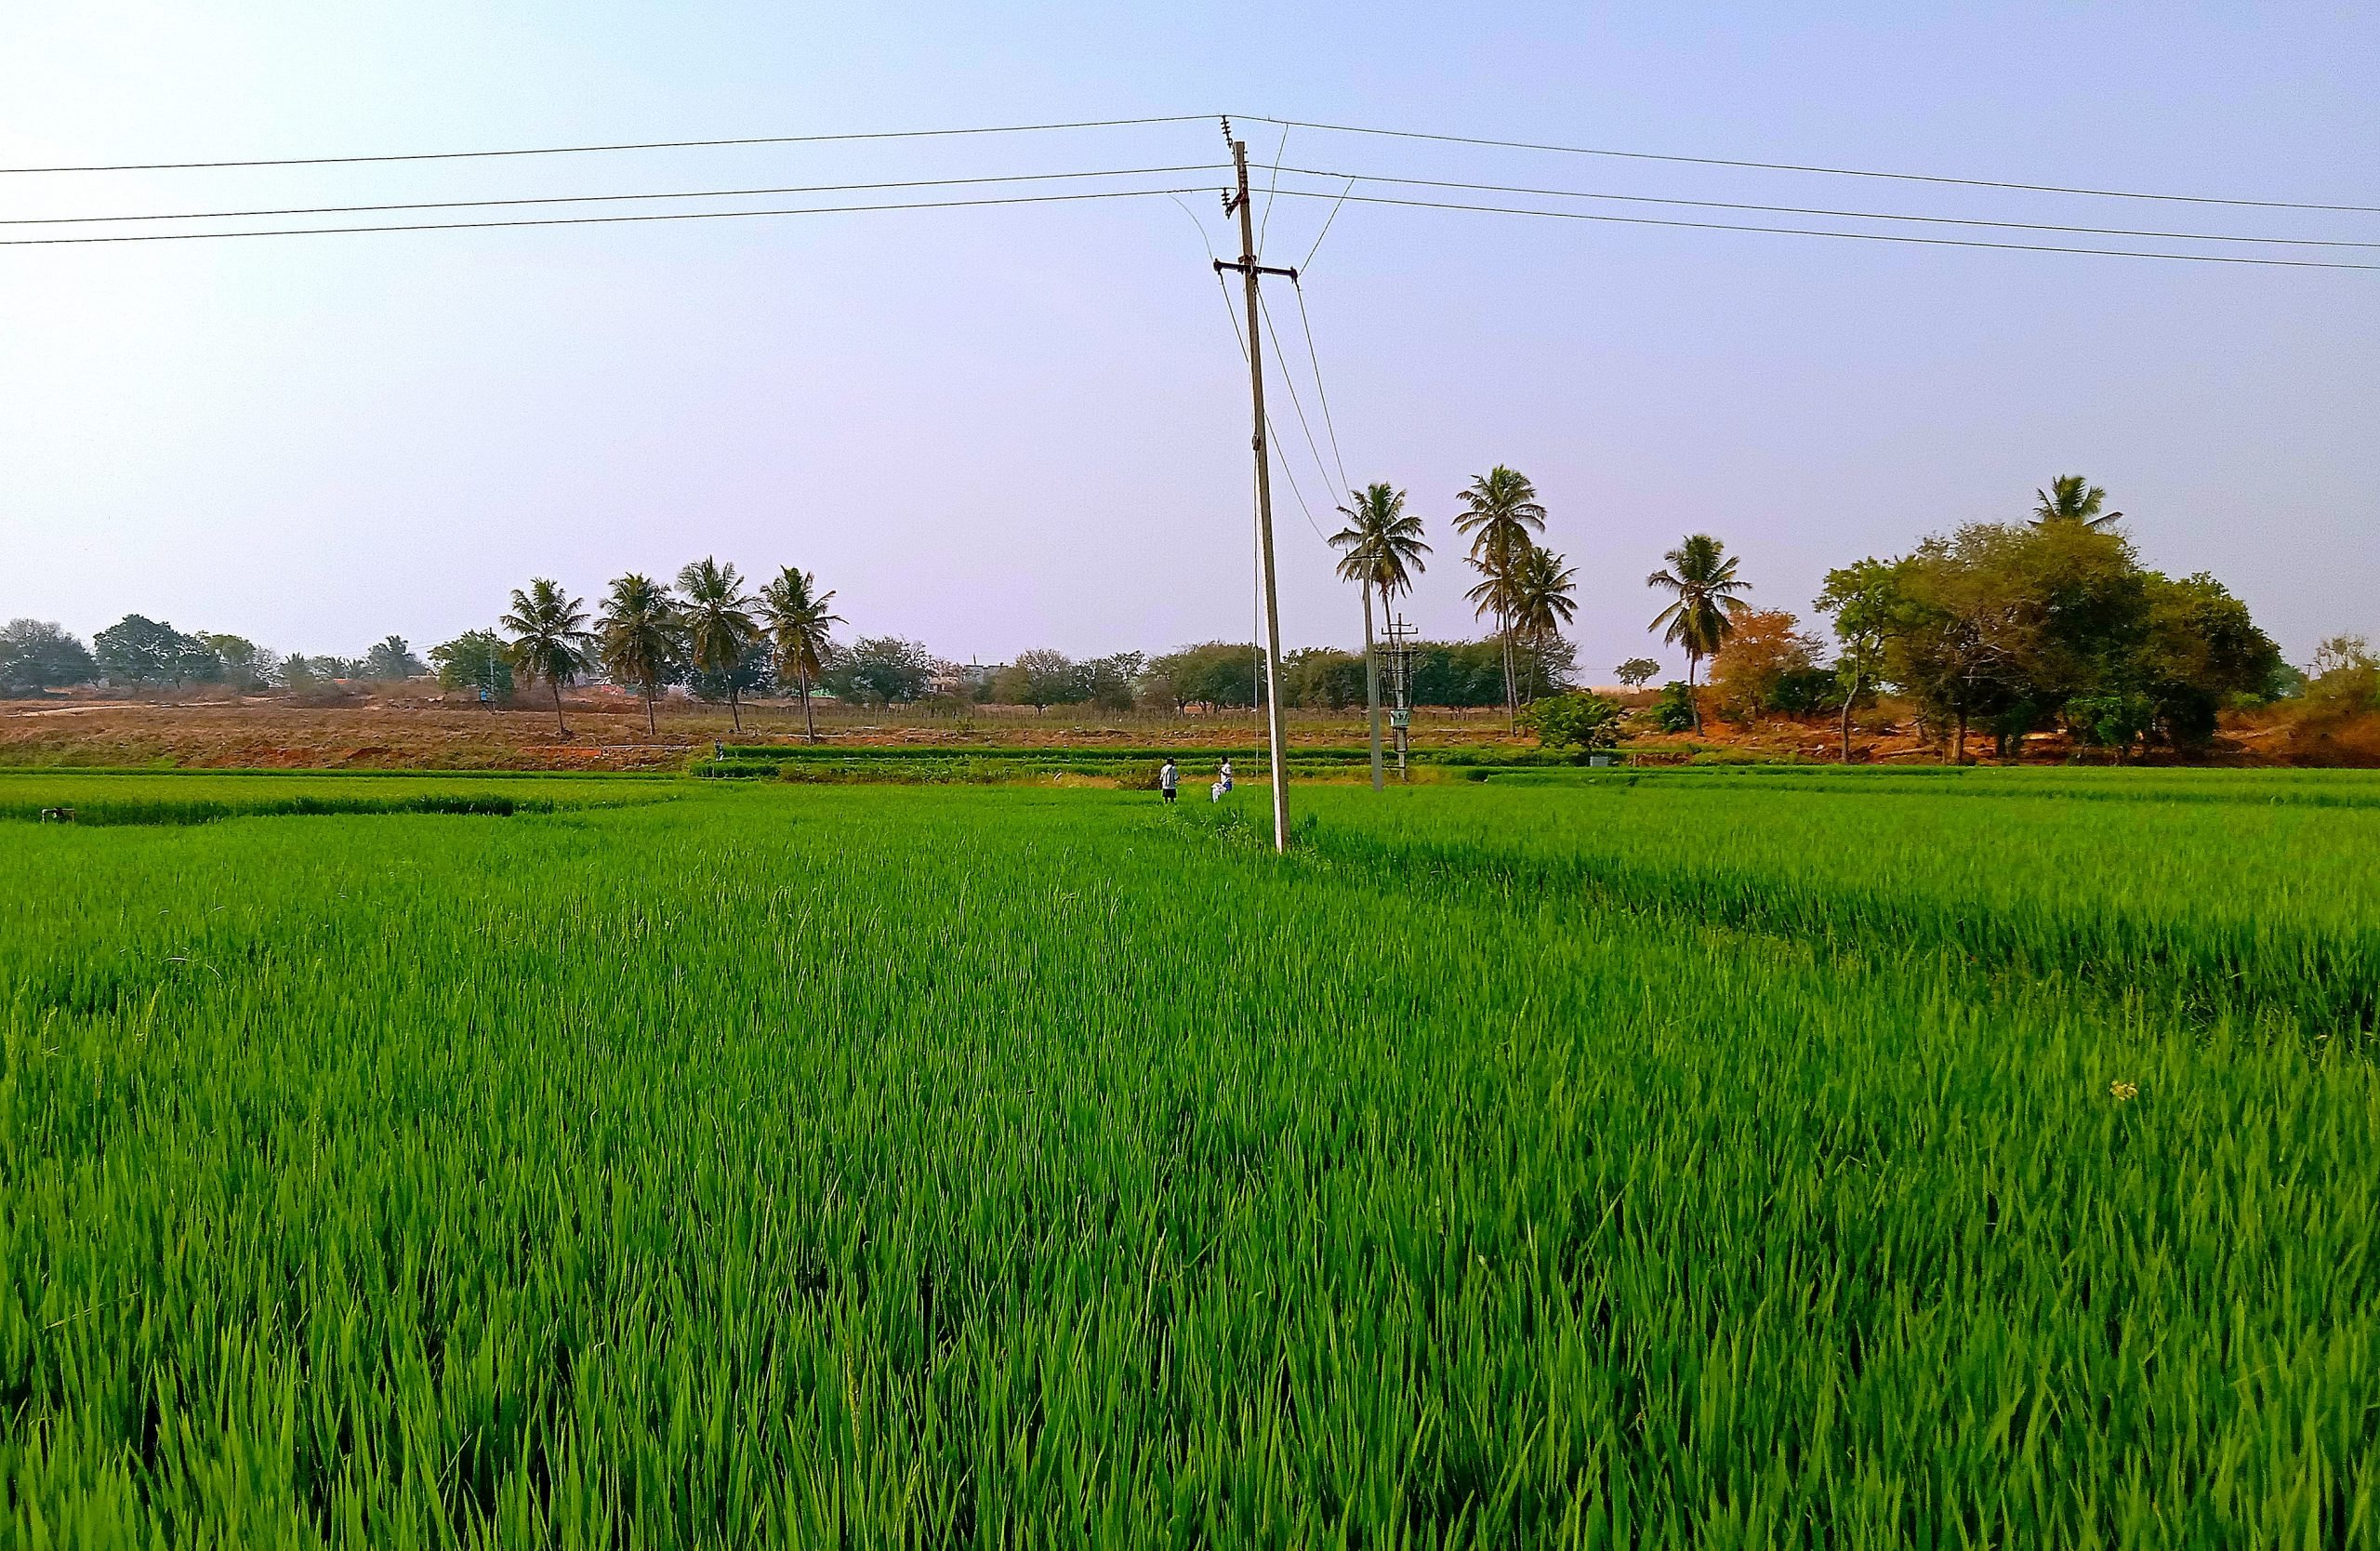 Greenery of paddy fields